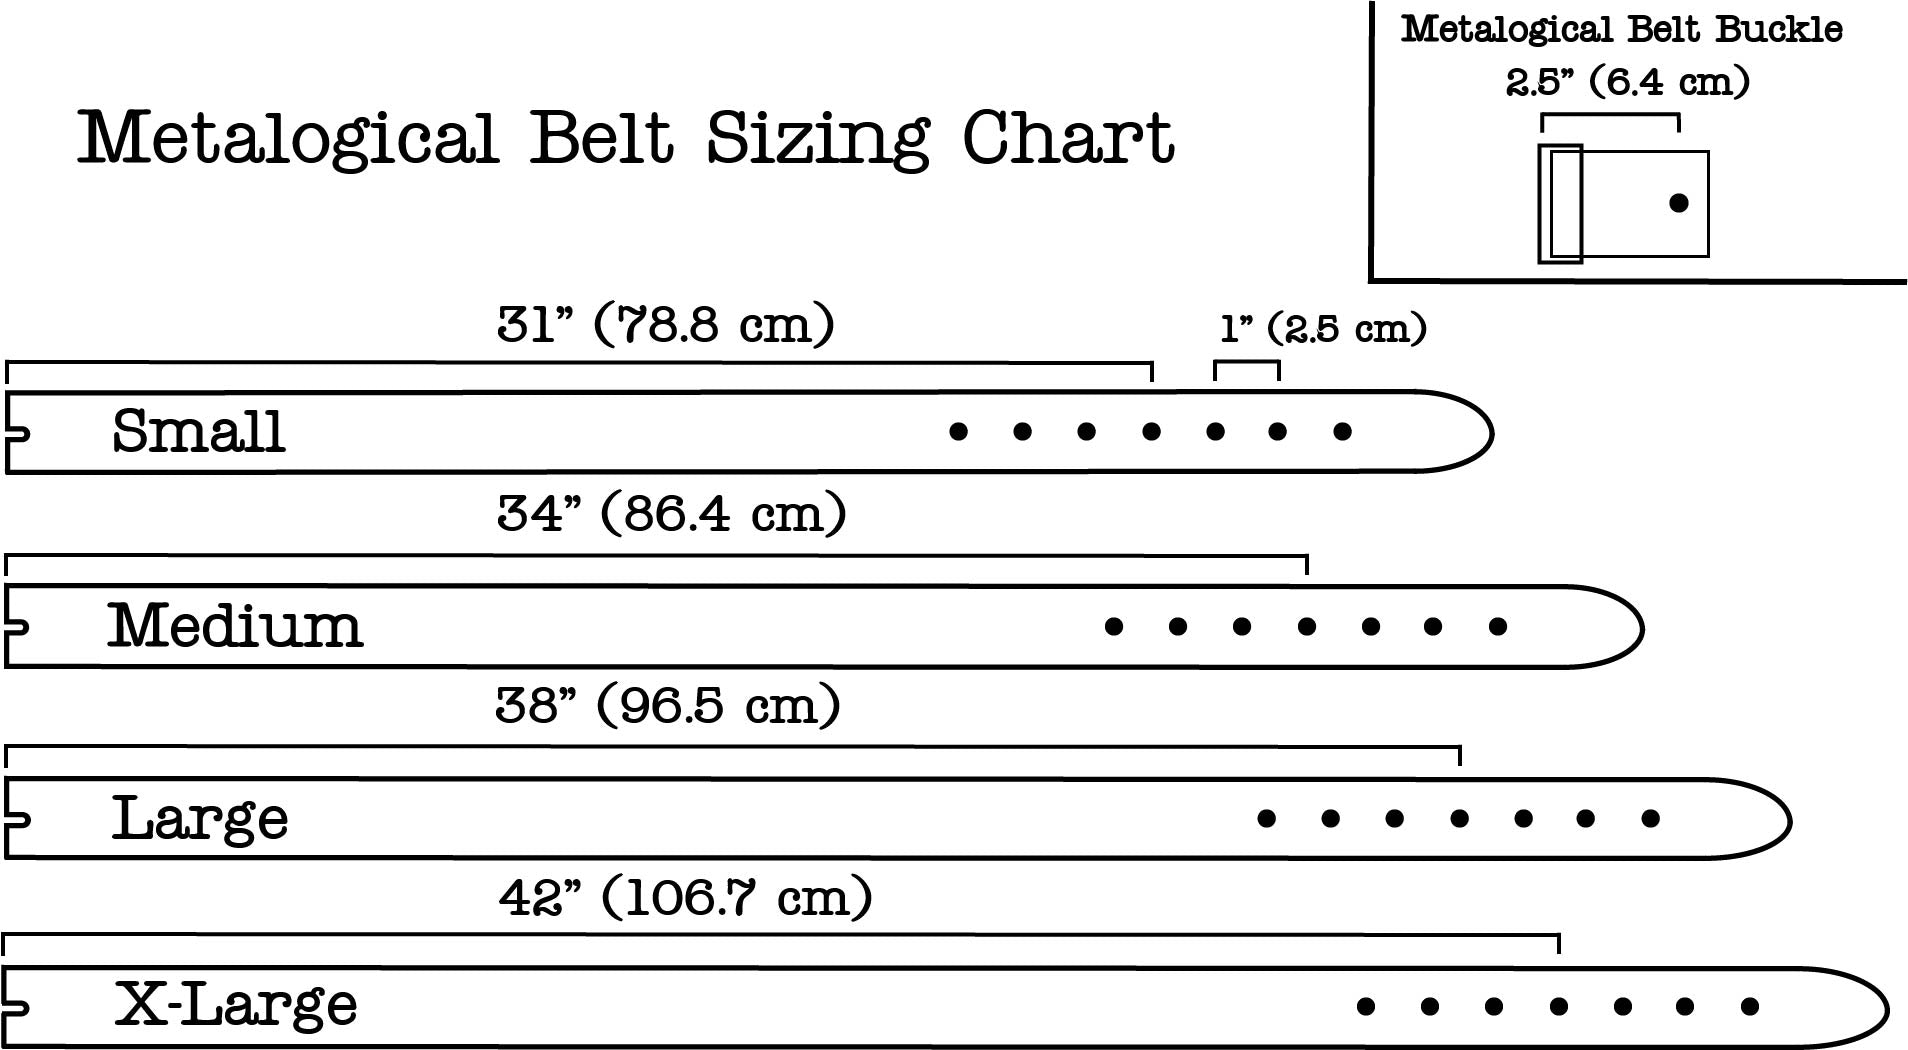 Metalogical Belt Sizing Chart